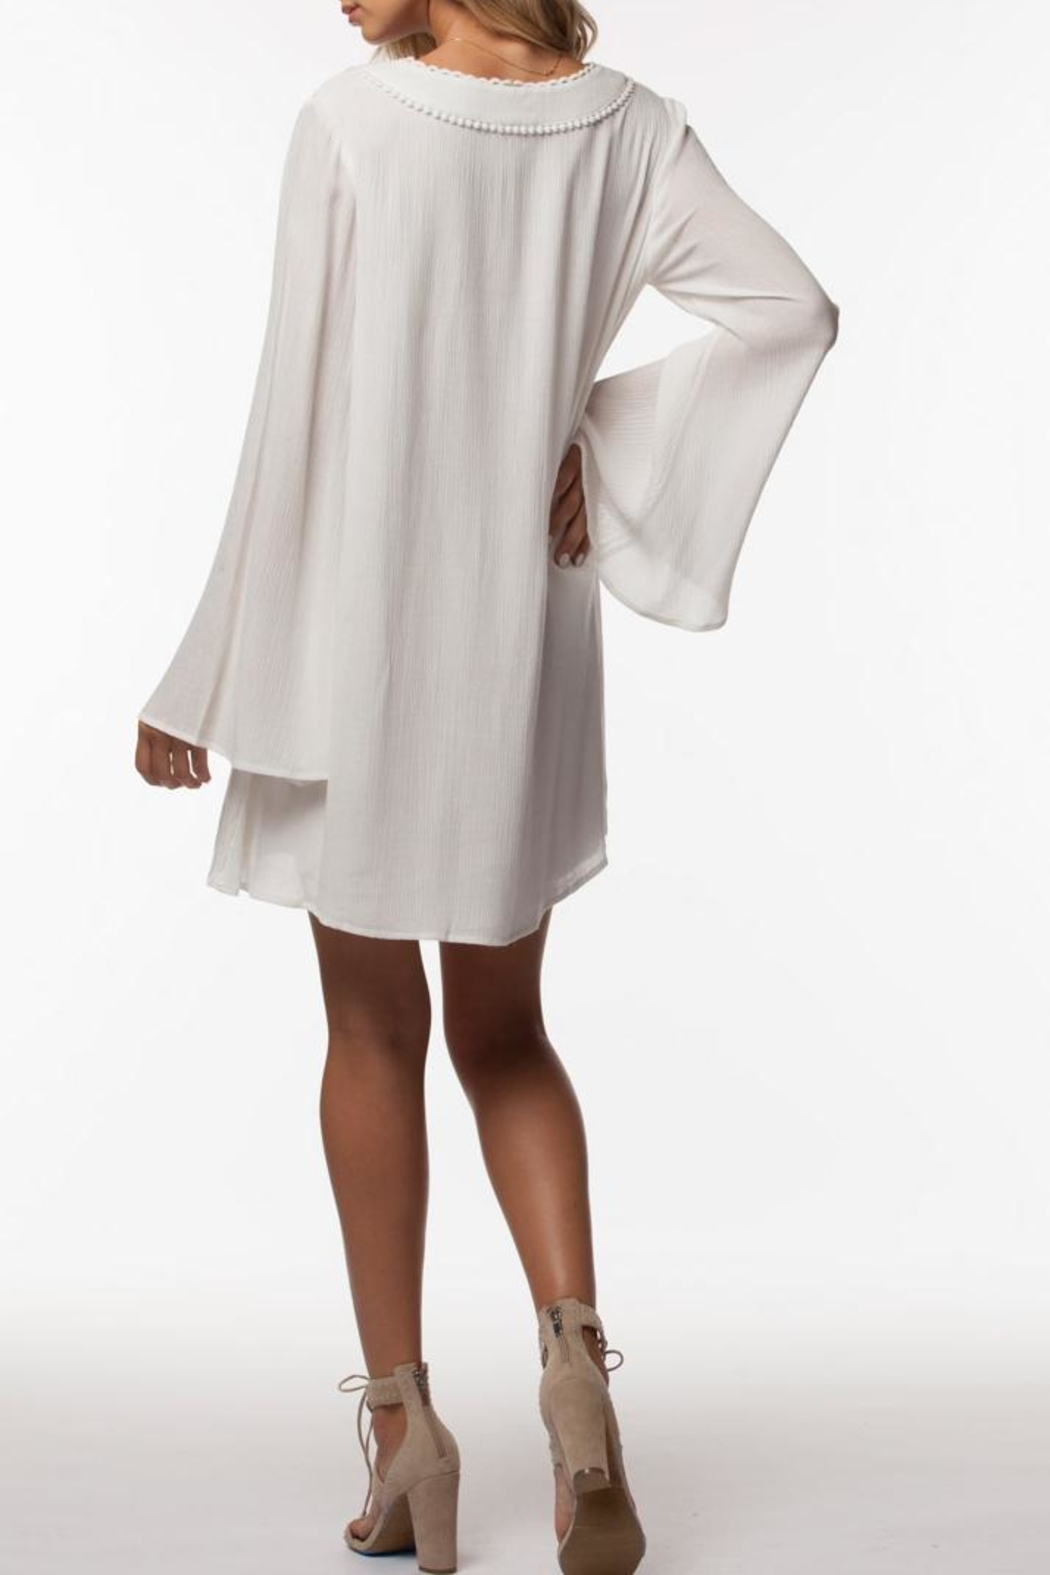 PPLA Clothing Cassius Dress - Front Full Image